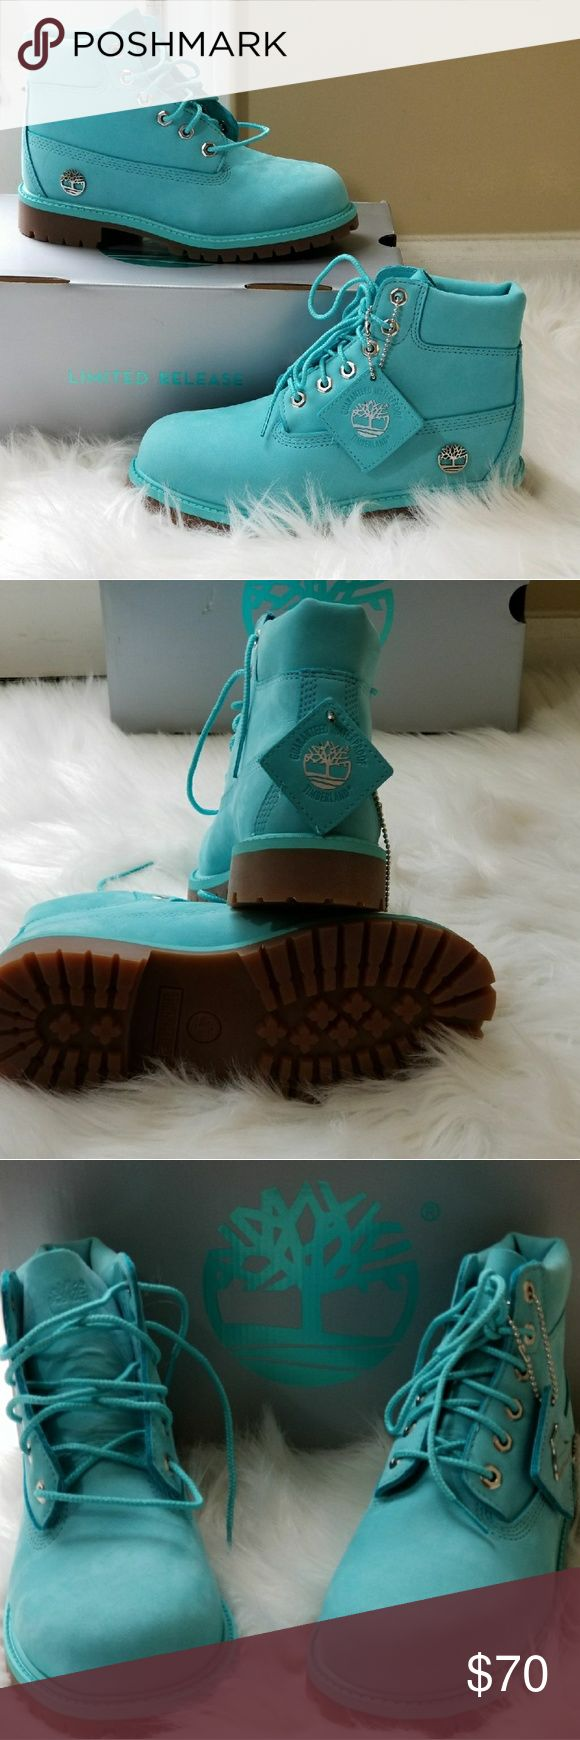 Limited ReleaseGirls Turquoise Timberlands Little Girls bright & Cute turquoise blue boots! Perfect for the Little Fashionista! Box included. Timberland Shoes Boots